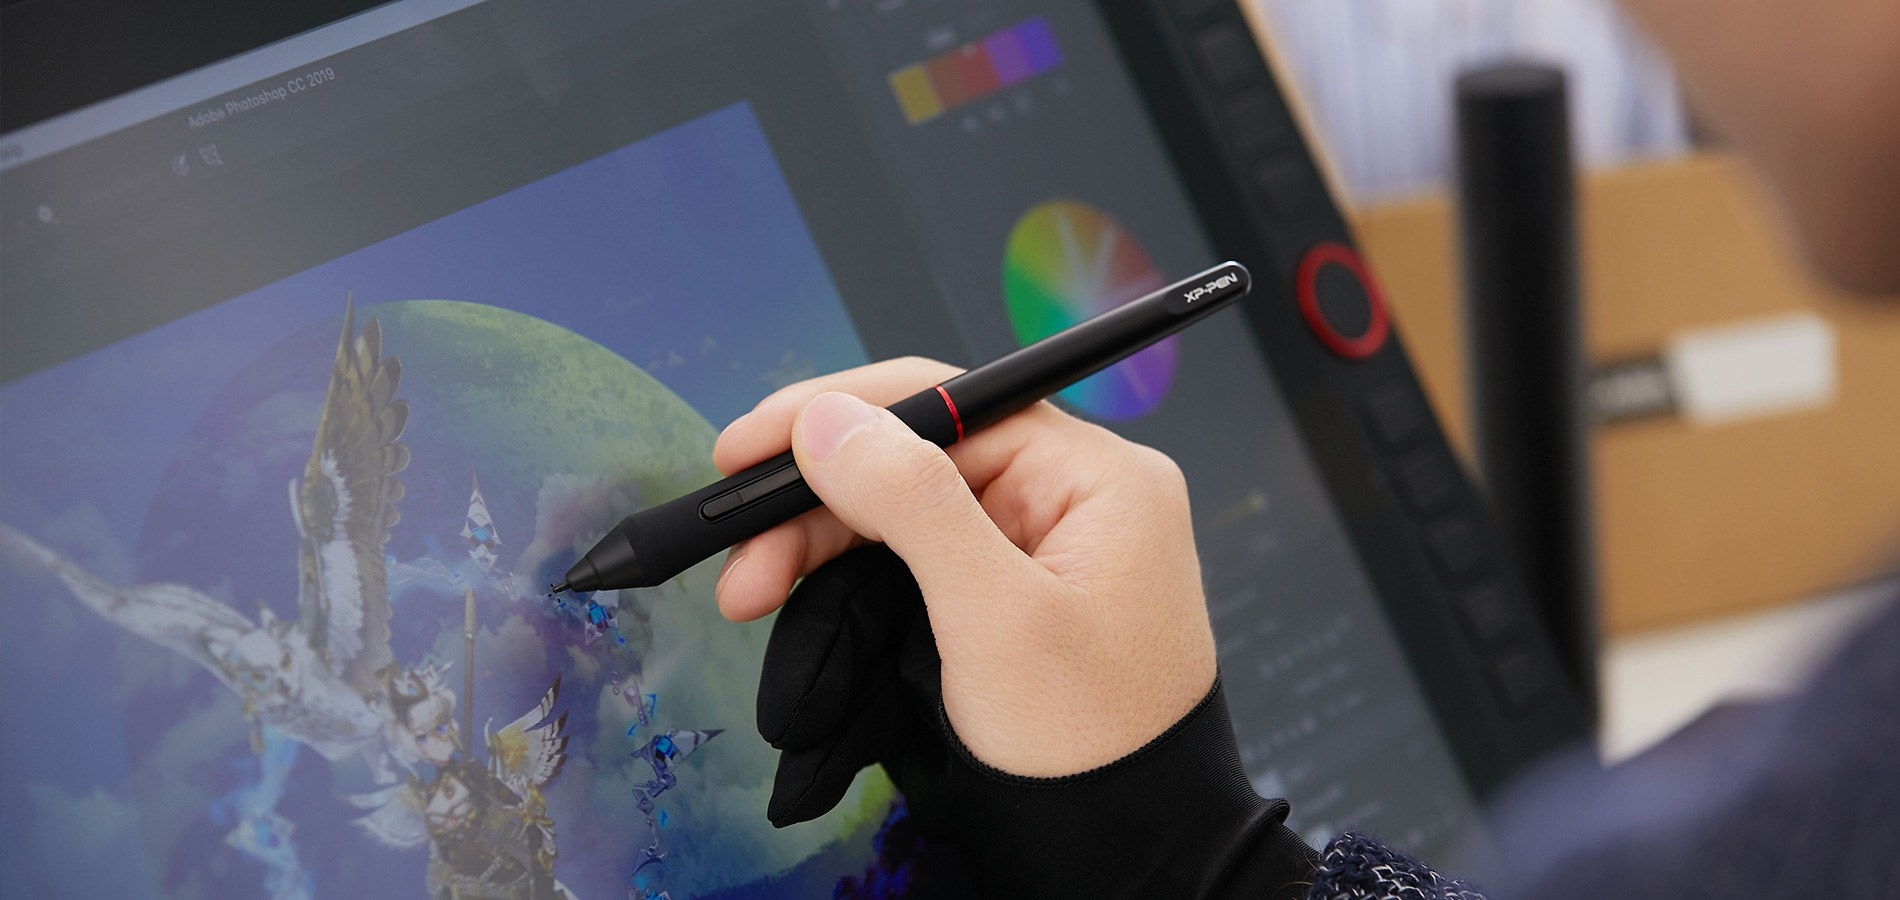 digital writing , drawing and painting on XP-Pen Artist 22R Pro Graphic Pen Display